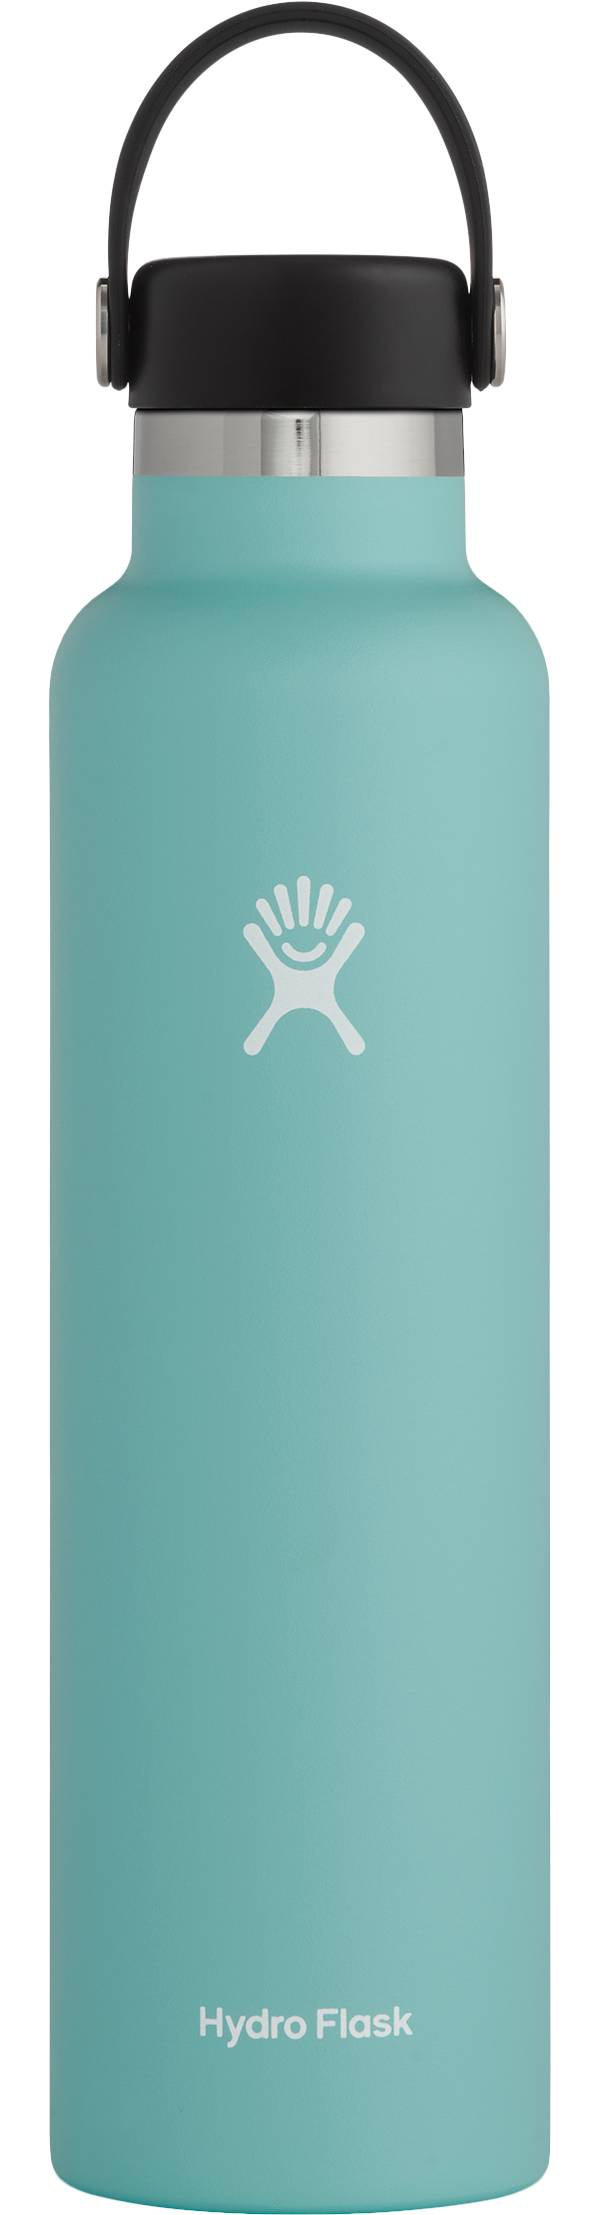 Hydro Flask Standard Mouth 24 oz. Bottle product image